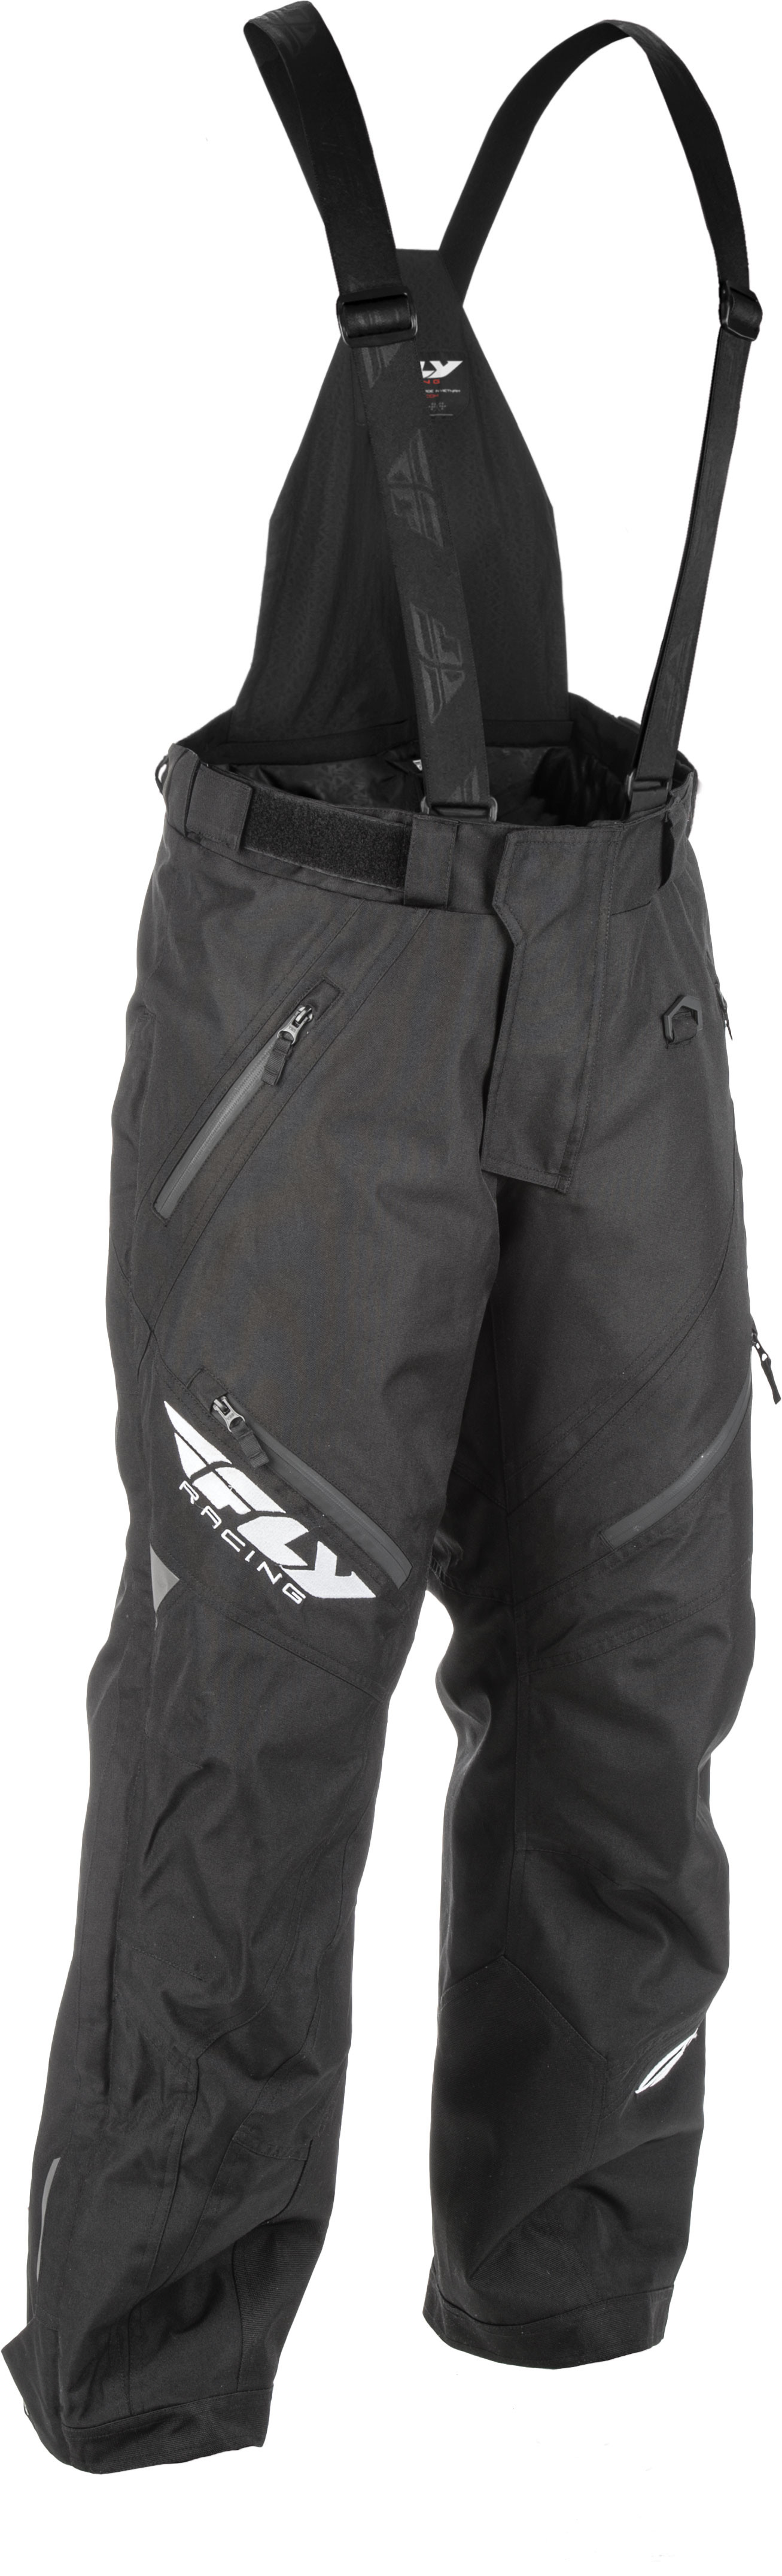 SNX High Performance Pant